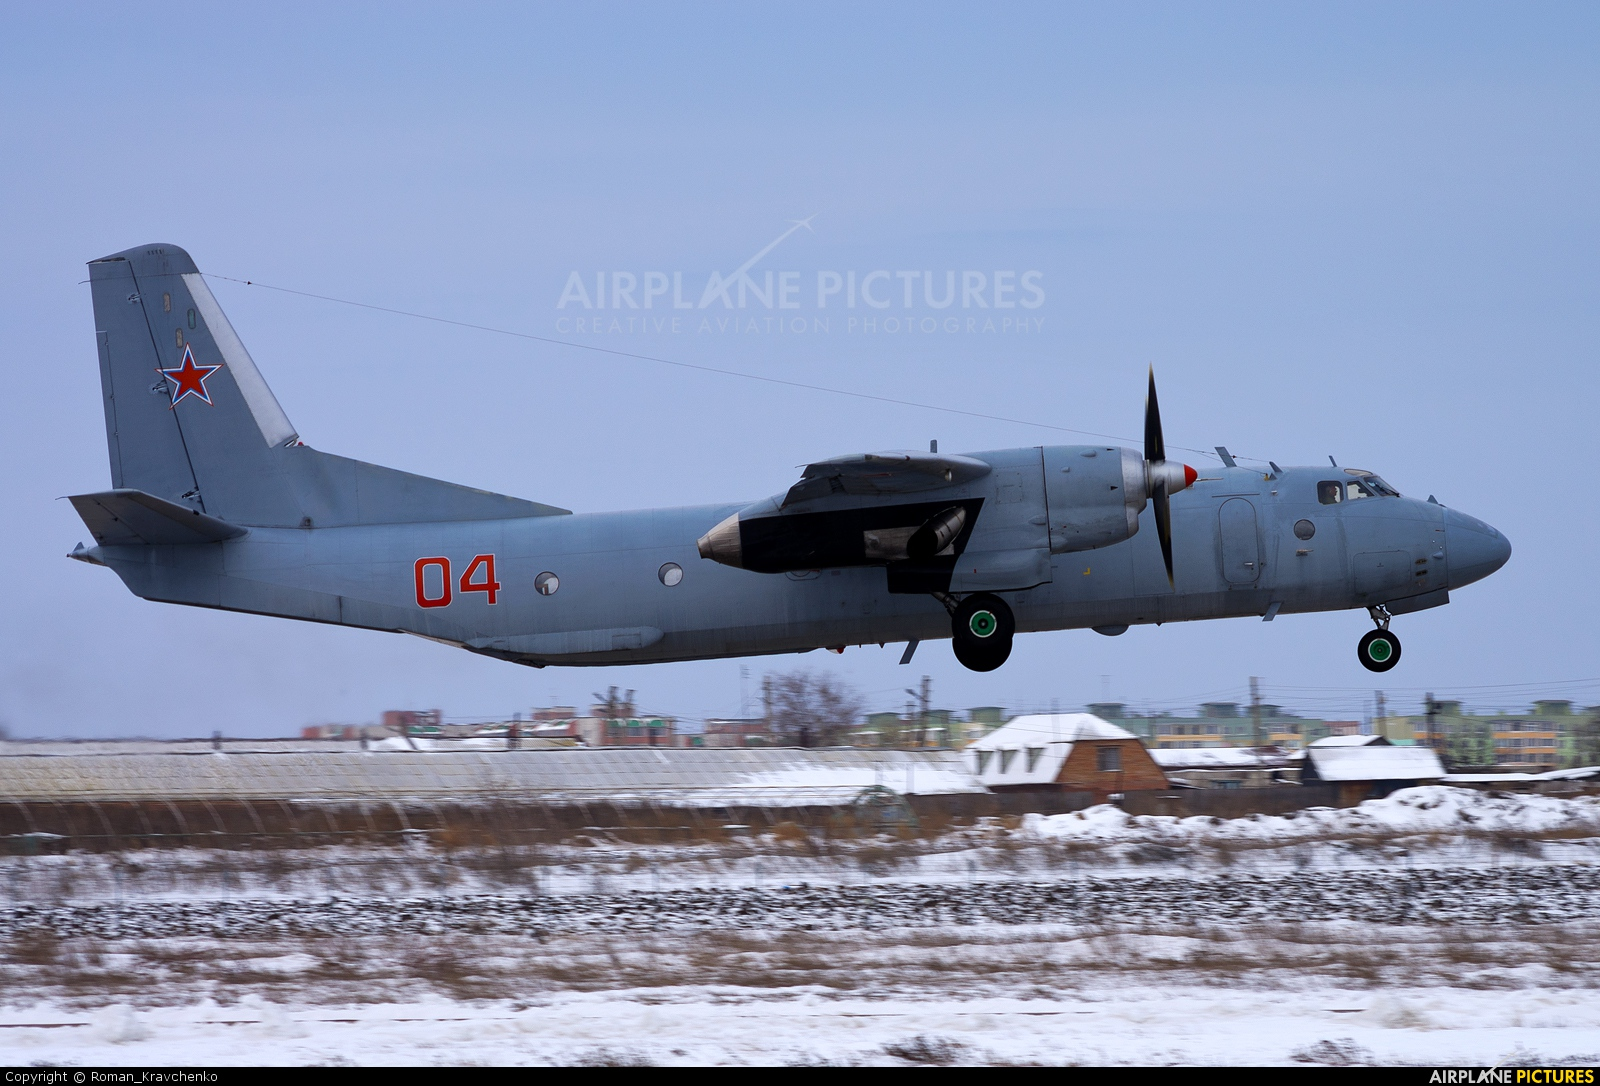 Russia - Navy 04 aircraft at Undisclosed Location